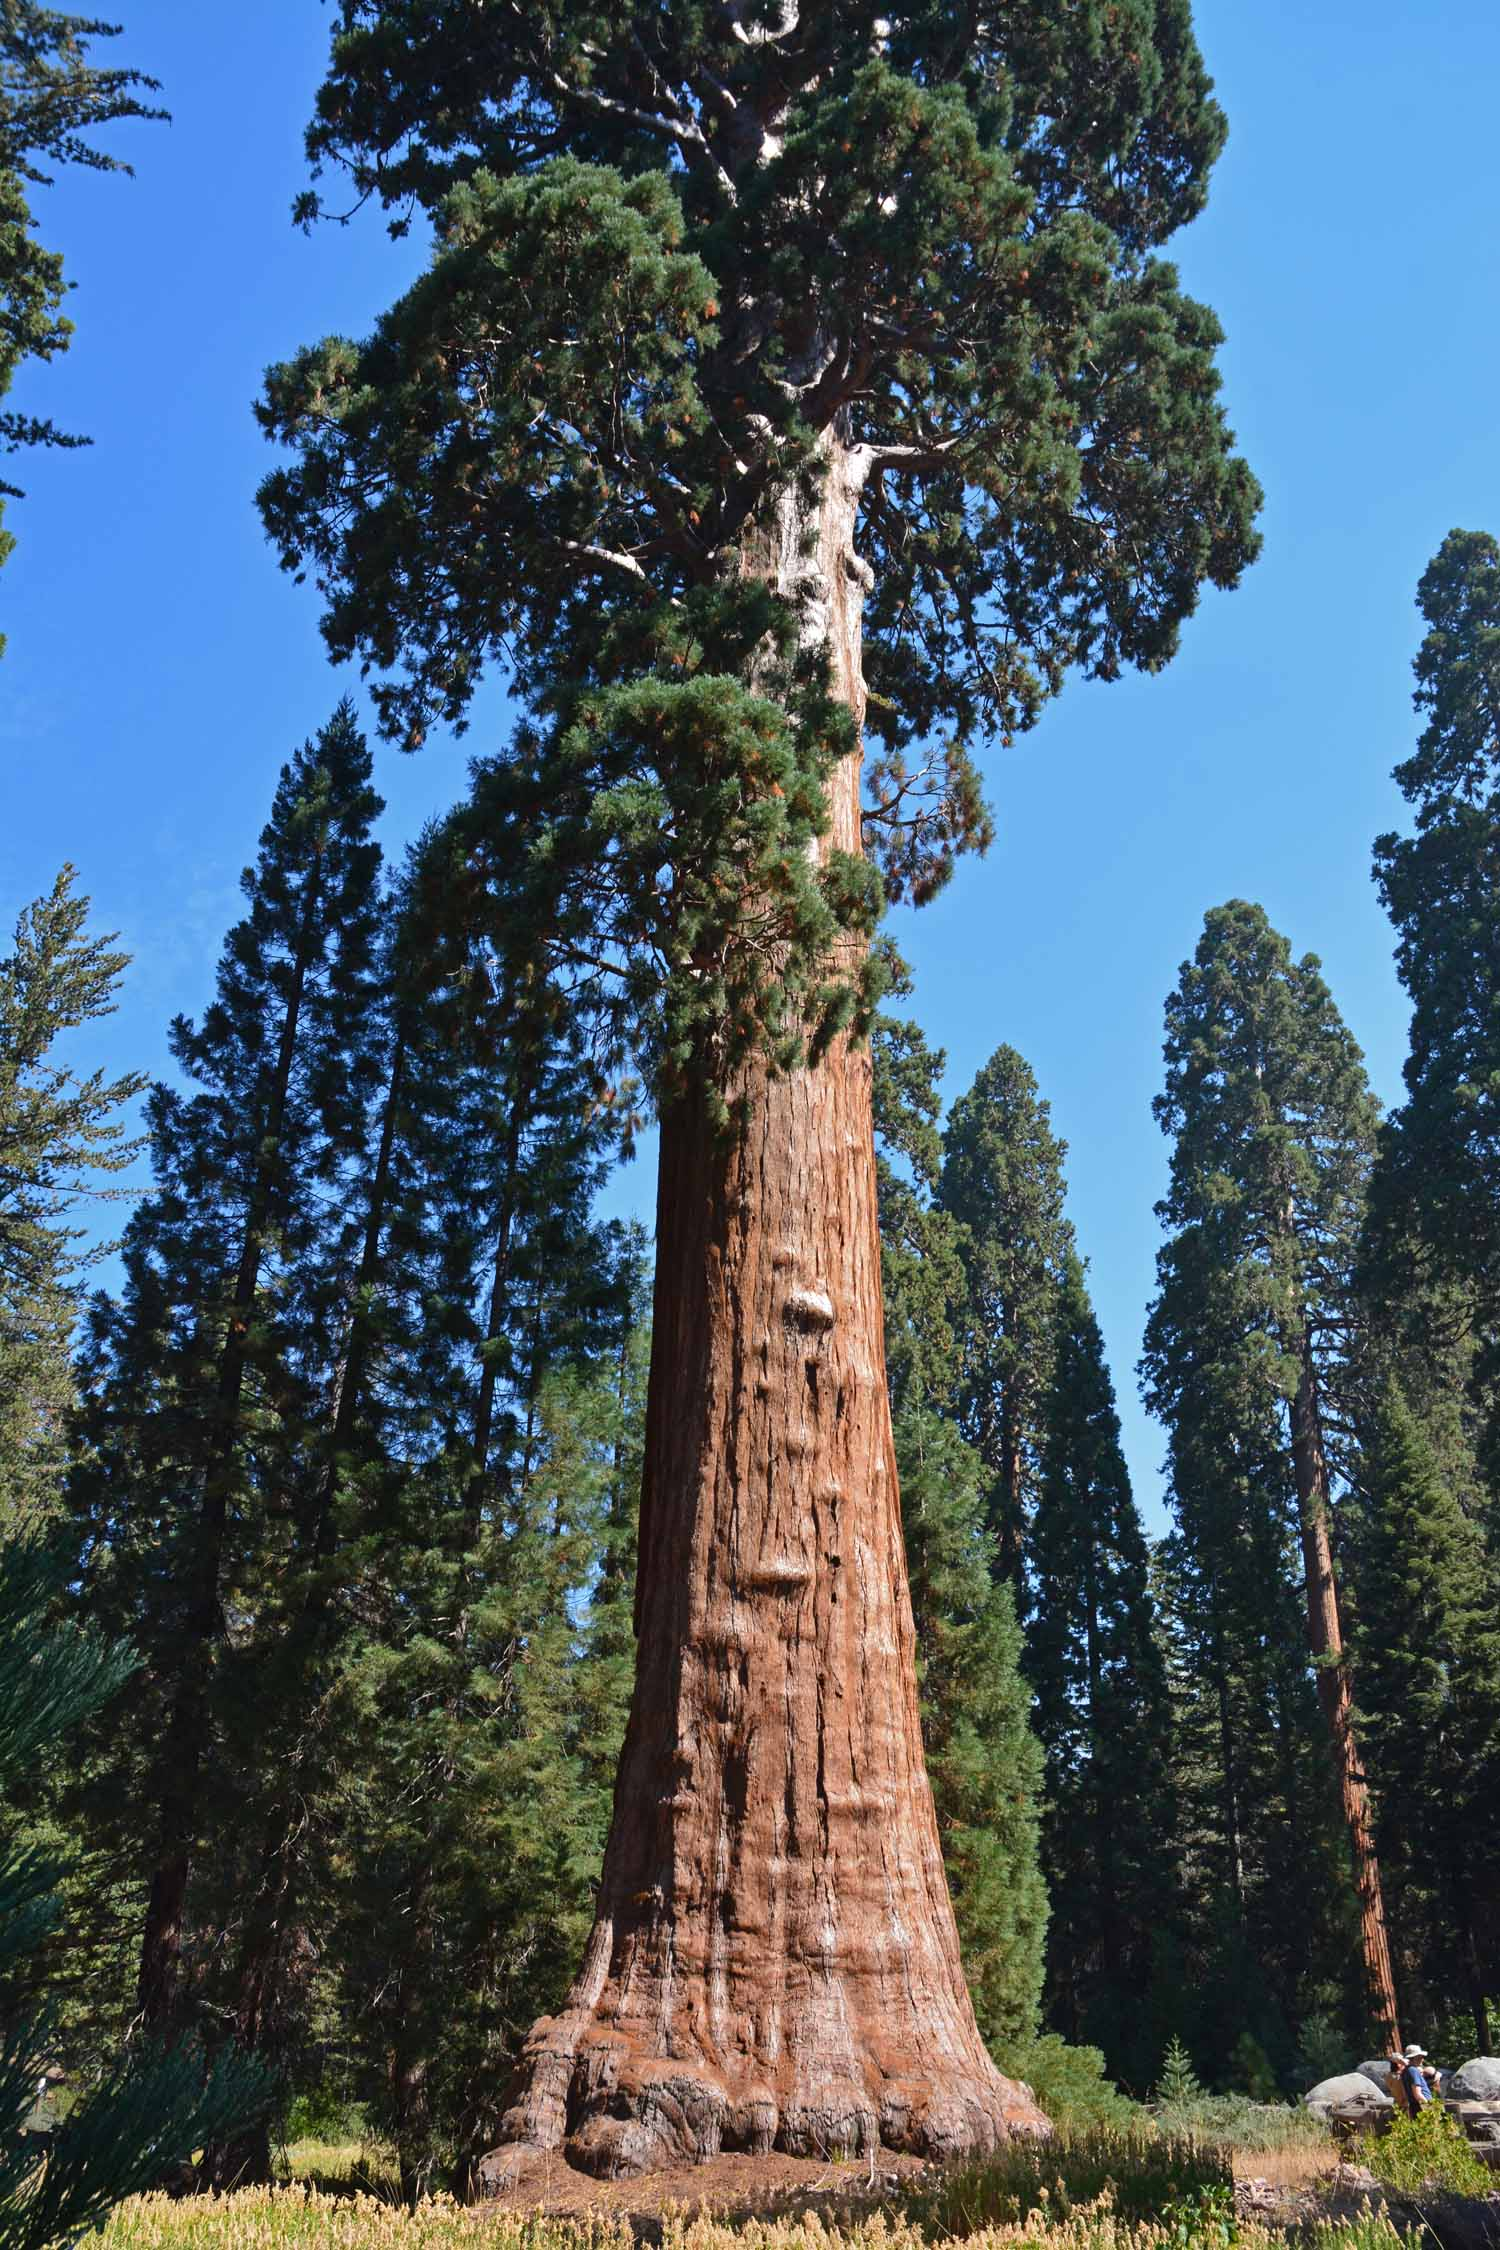 This is a big Sequoia from the bottom up!